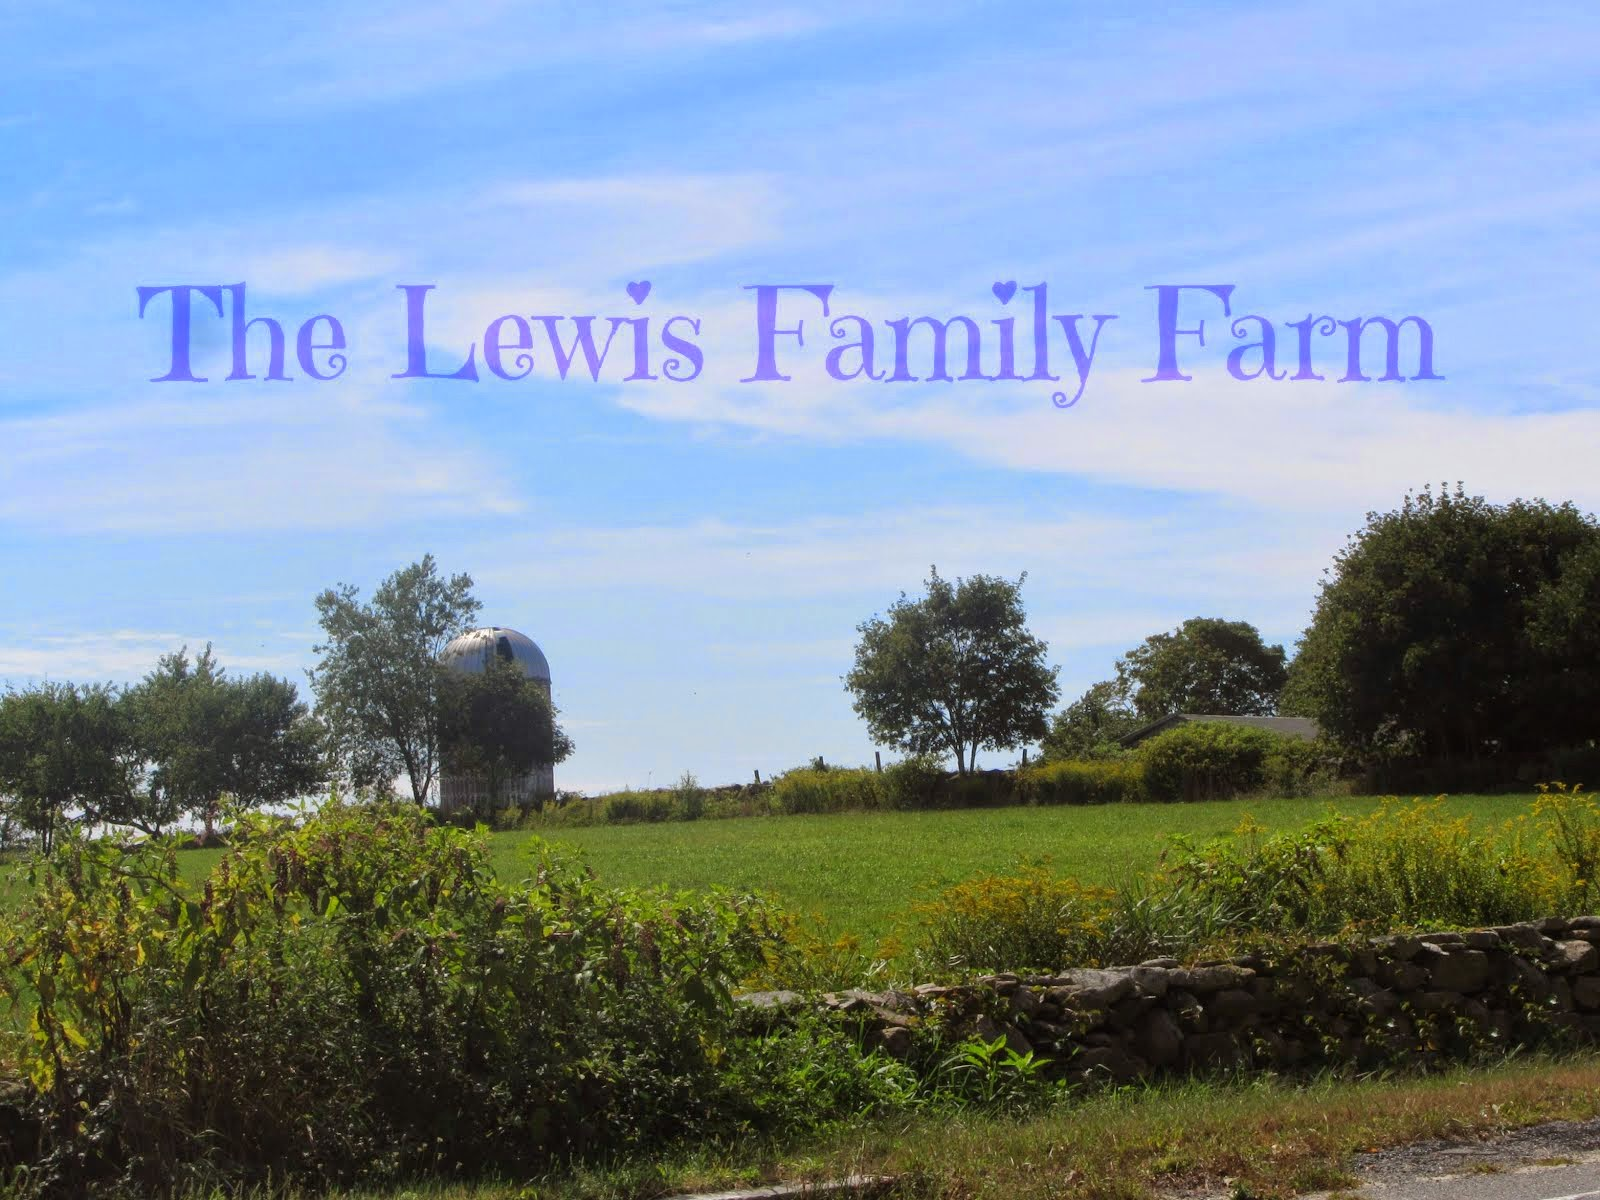 The Lewis Family Farm